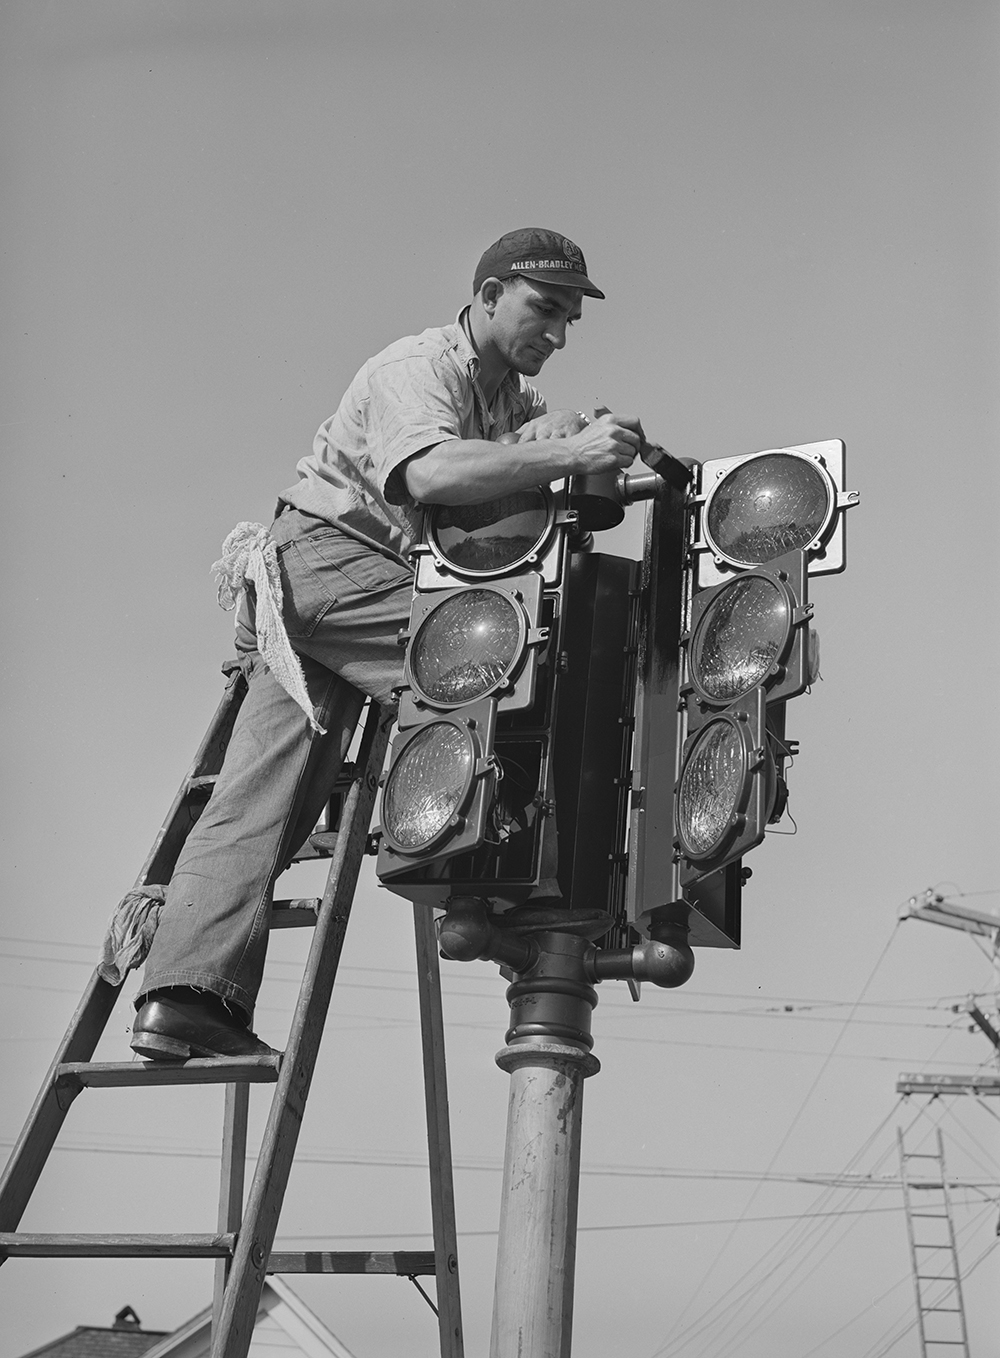 Putting up a new traffic signal in San Diego, California, 1940. Photograph by Russell Lee. Library of Congress, Prints and Photographs Division.